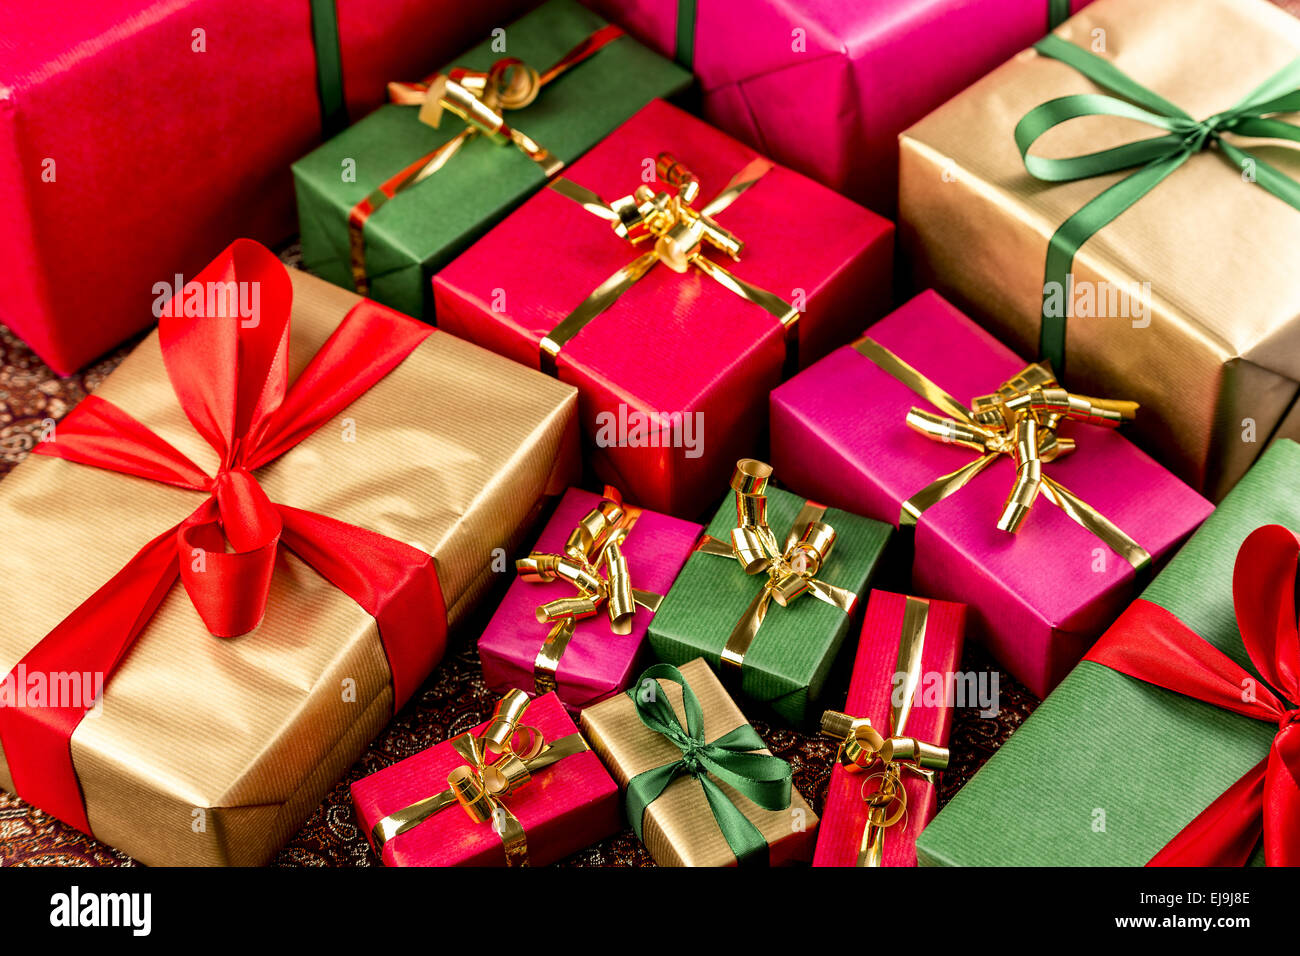 Tight Shot Brimming Over With Gifts - Stock Image